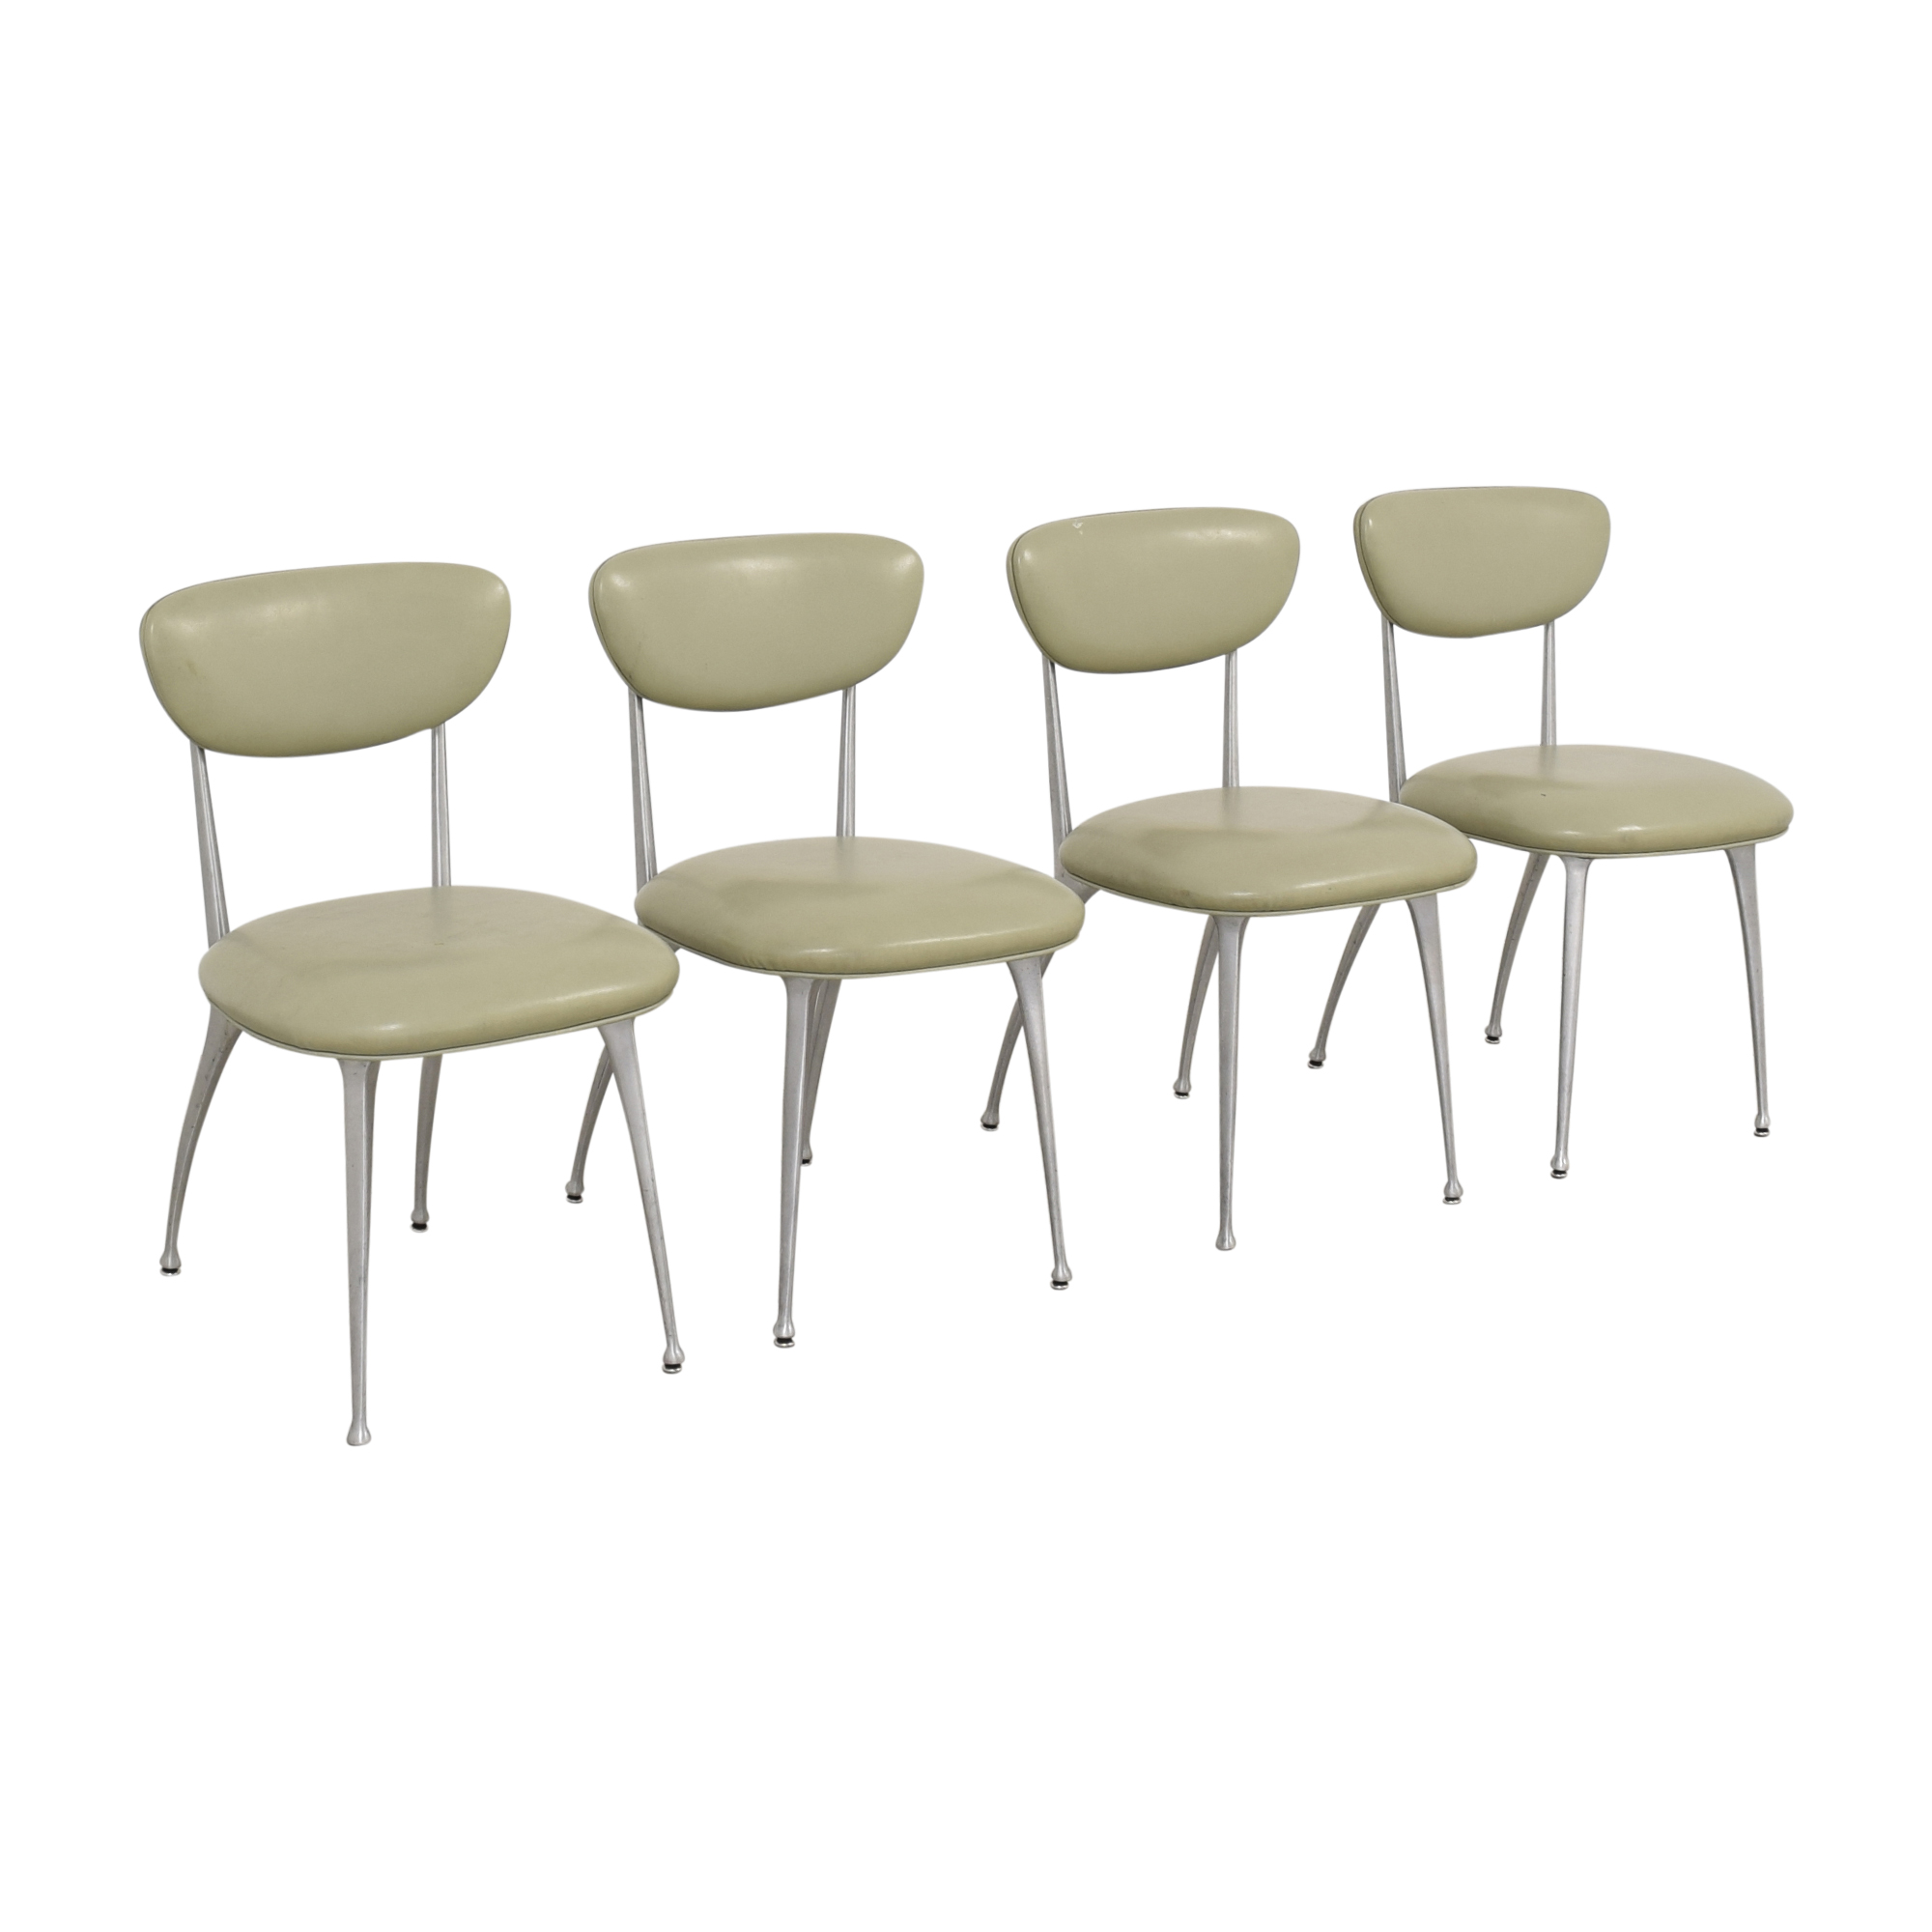 Modernica Modernica Vintage Dining Chairs dimensions